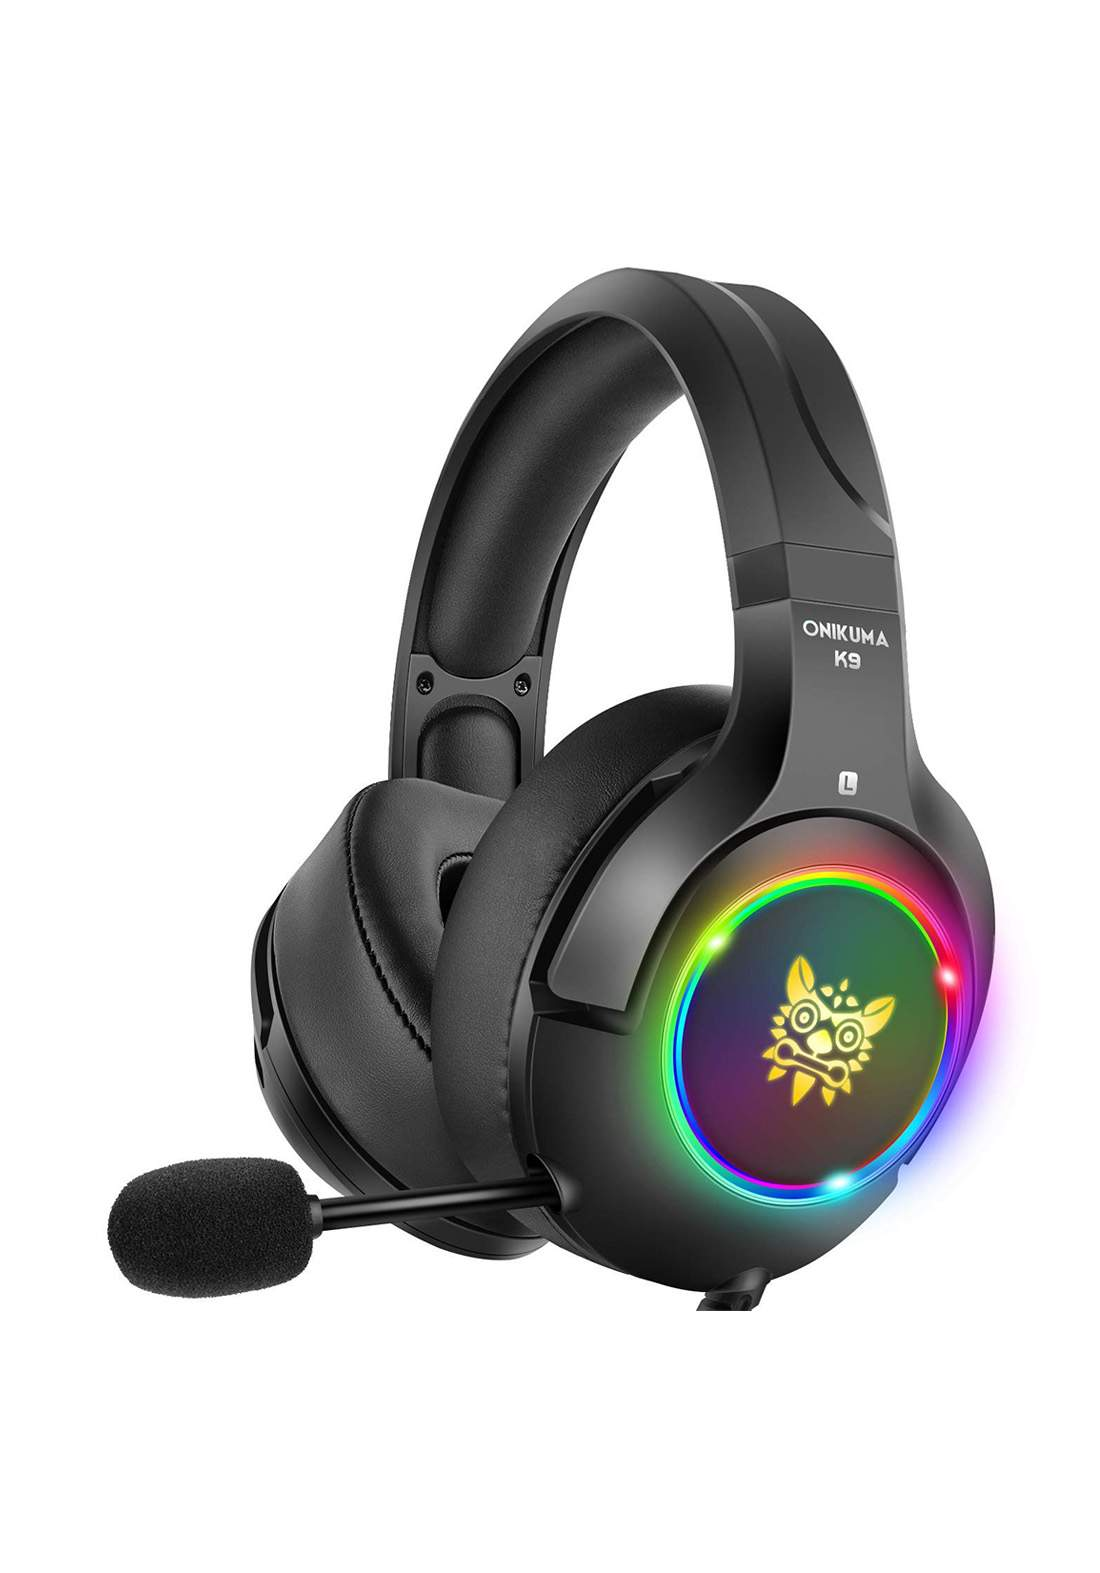 Onikuma K9 RGB Gaming Headset3.5mm Jack Stereo Noise-cancelling Microphone - Black  سماعة رأس